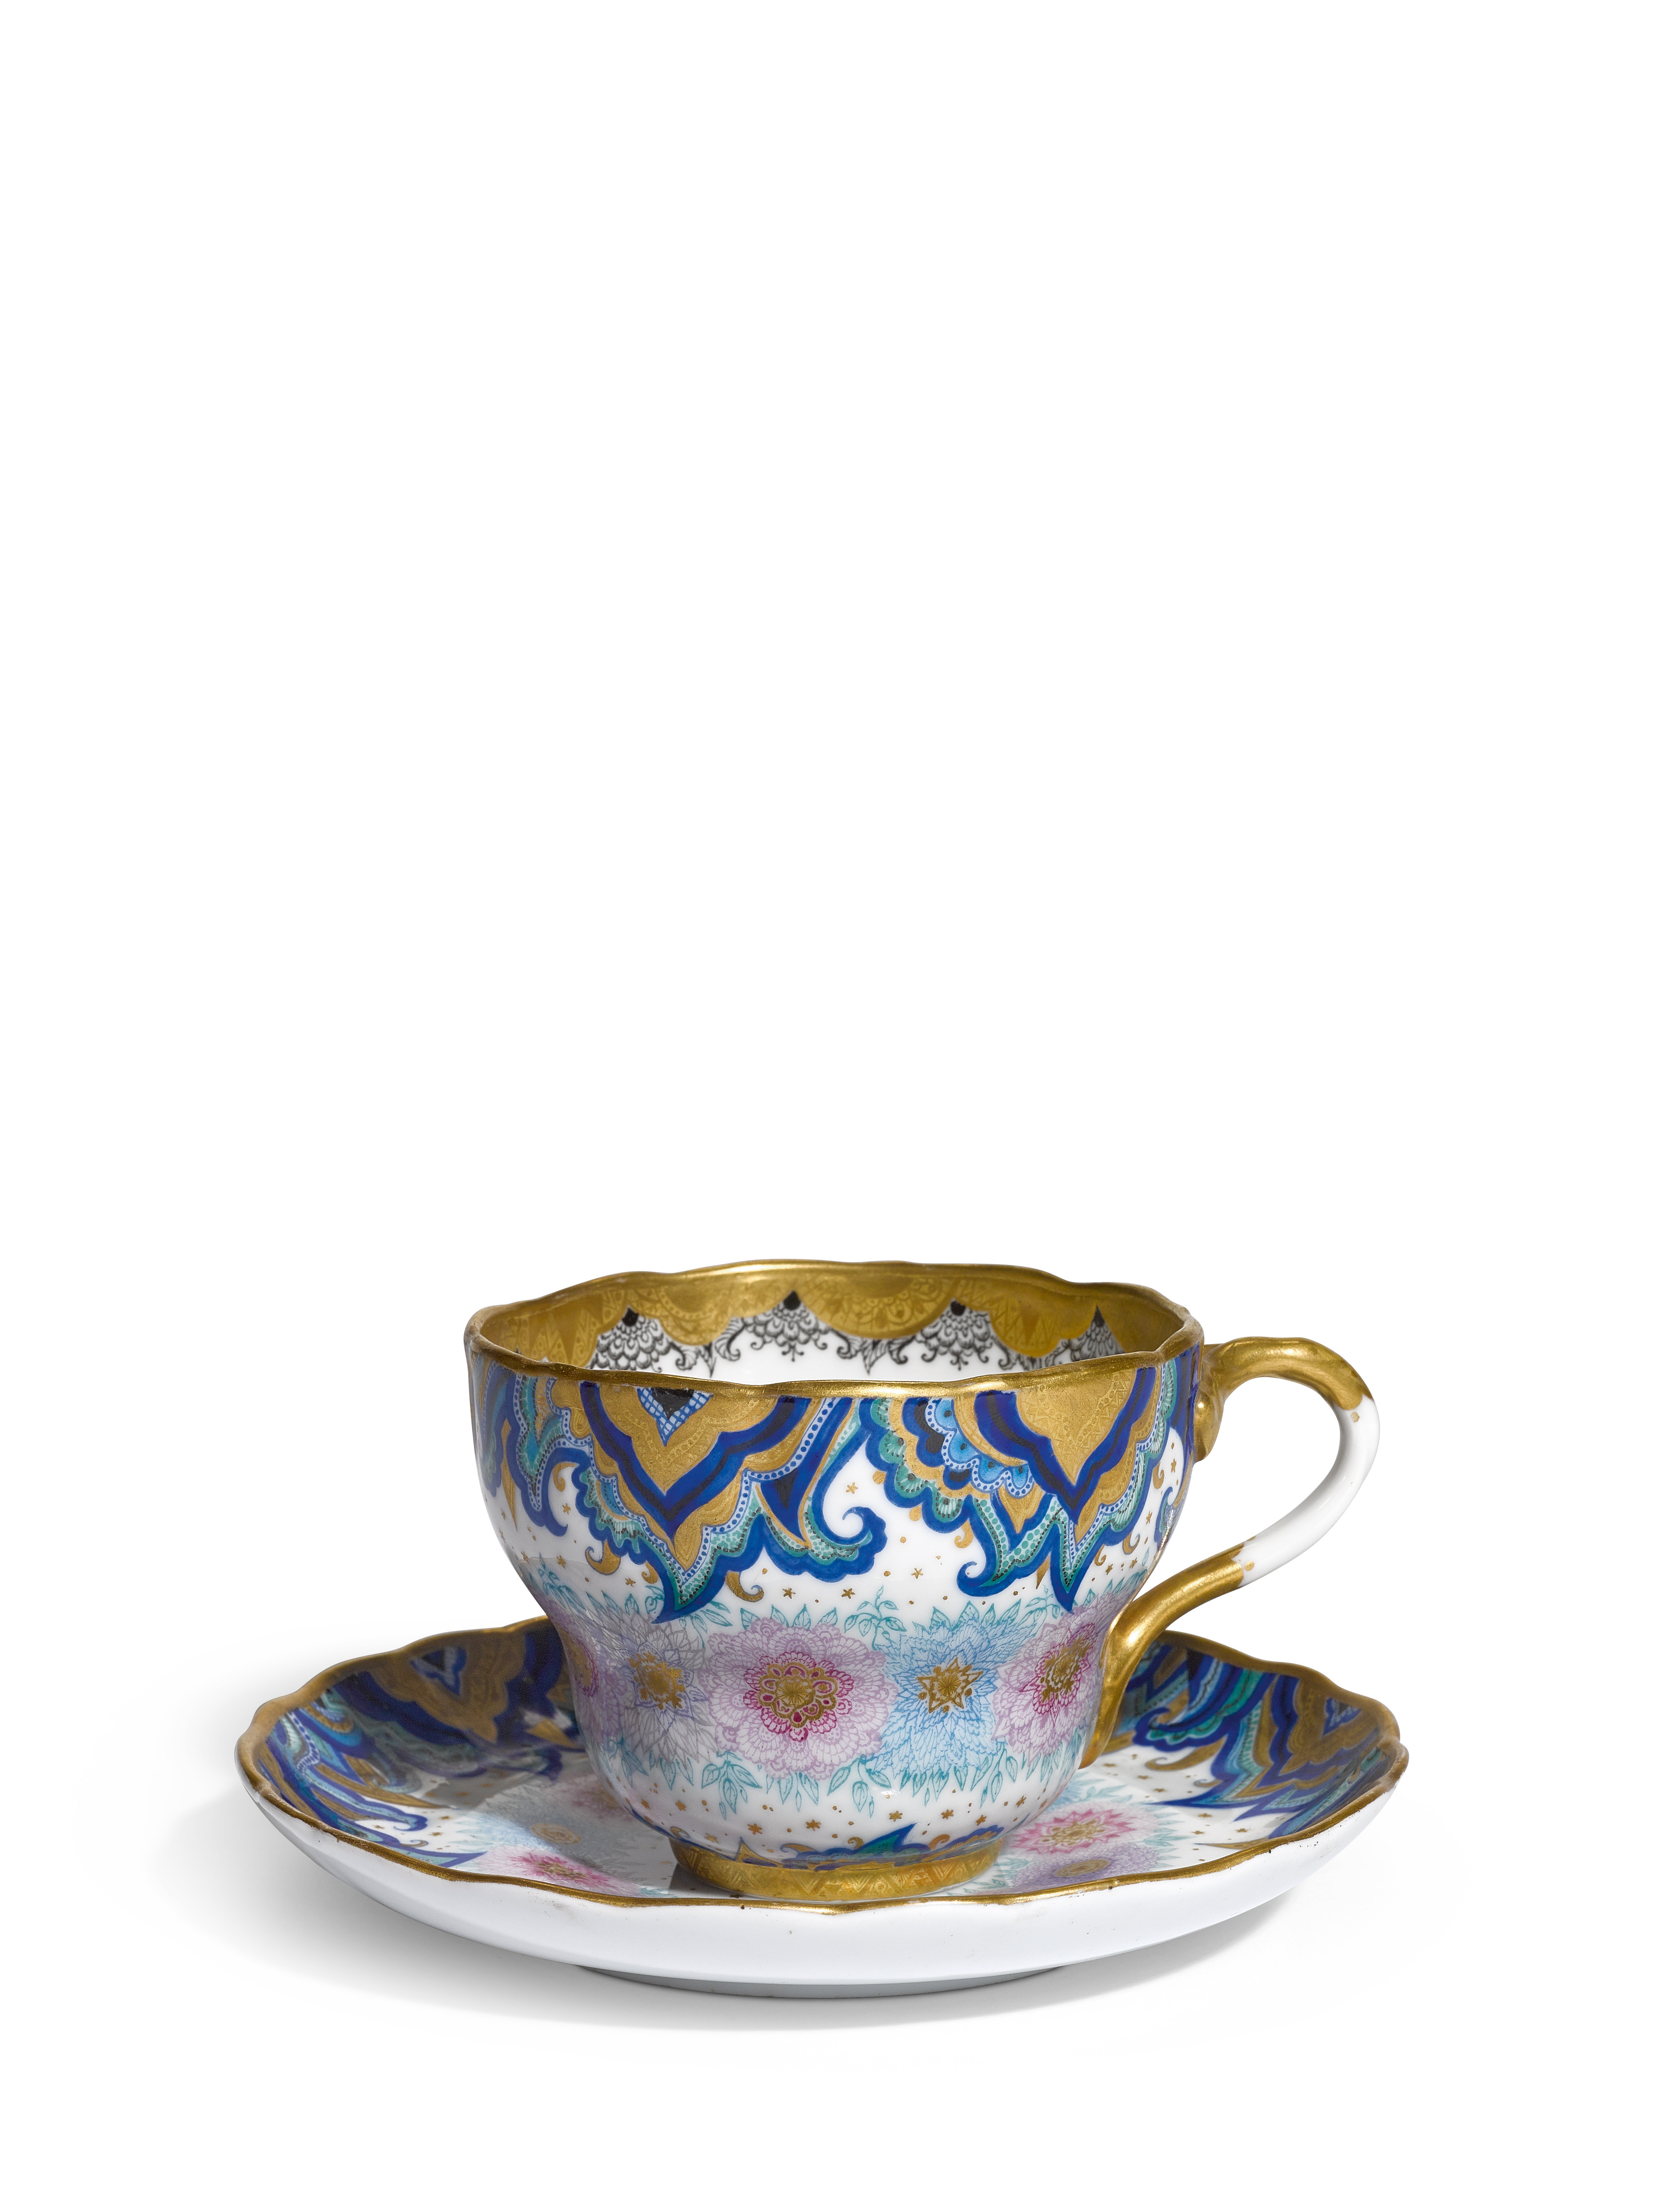 View full screen - View 1 of Lot 362. Arabesque and wreath: A Soviet porcelain cup and saucer, Lomonosov Porcelain Factory, Leningrad, 1934.